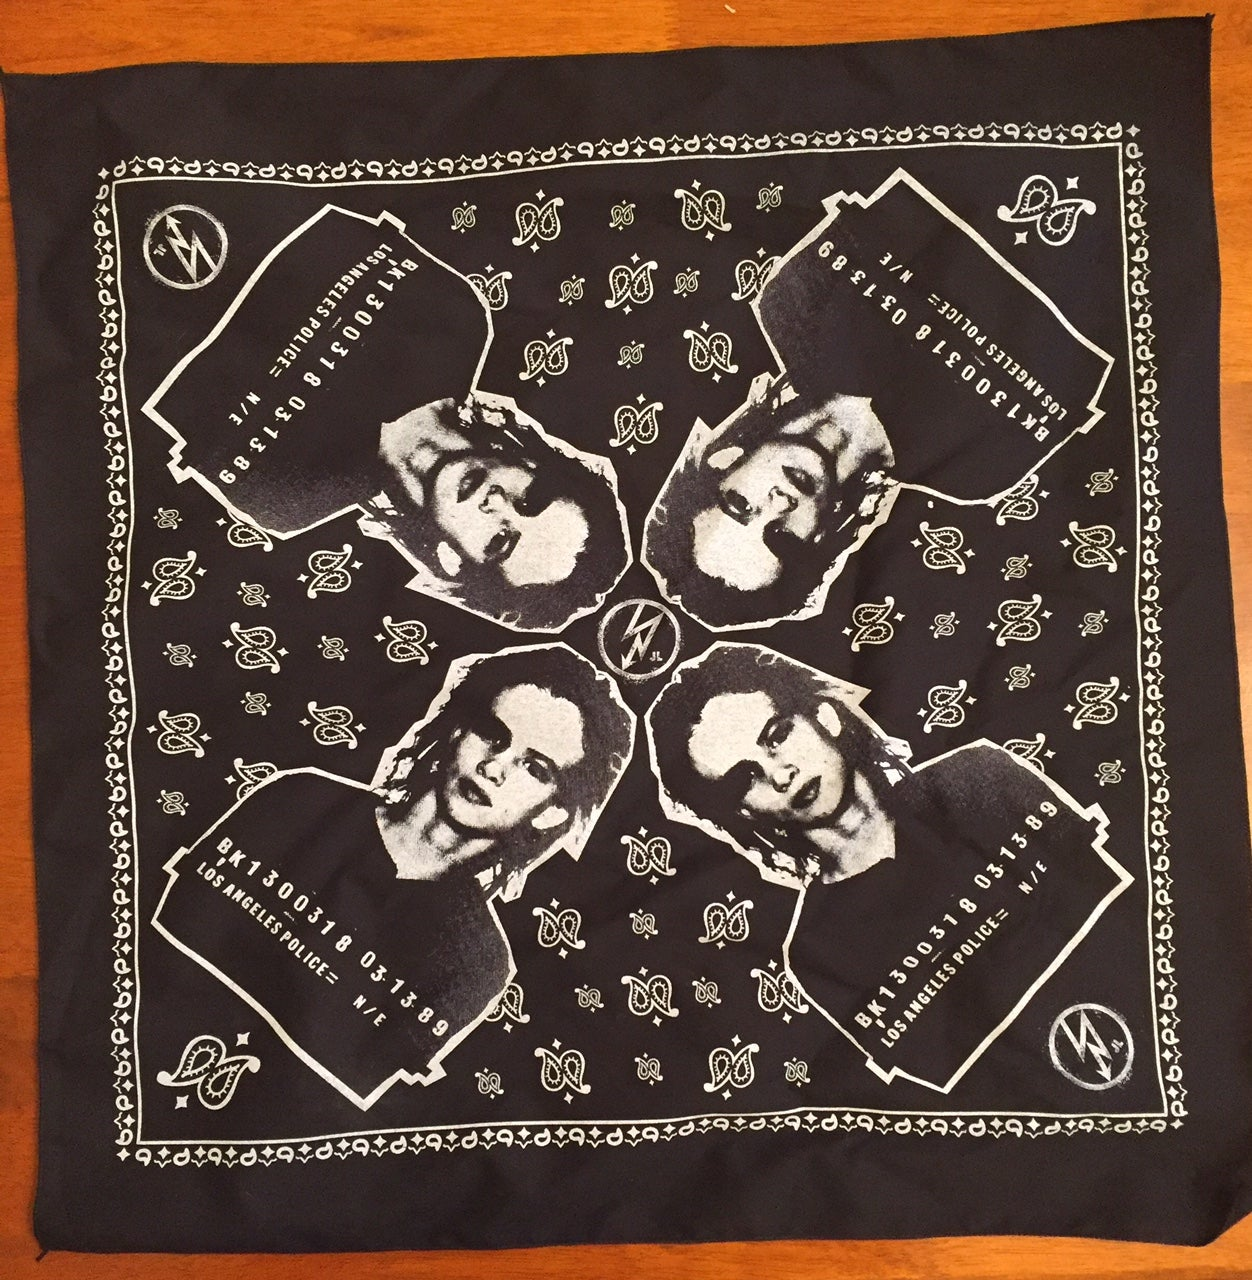 Image of Mug Shot bandana Four Corners.